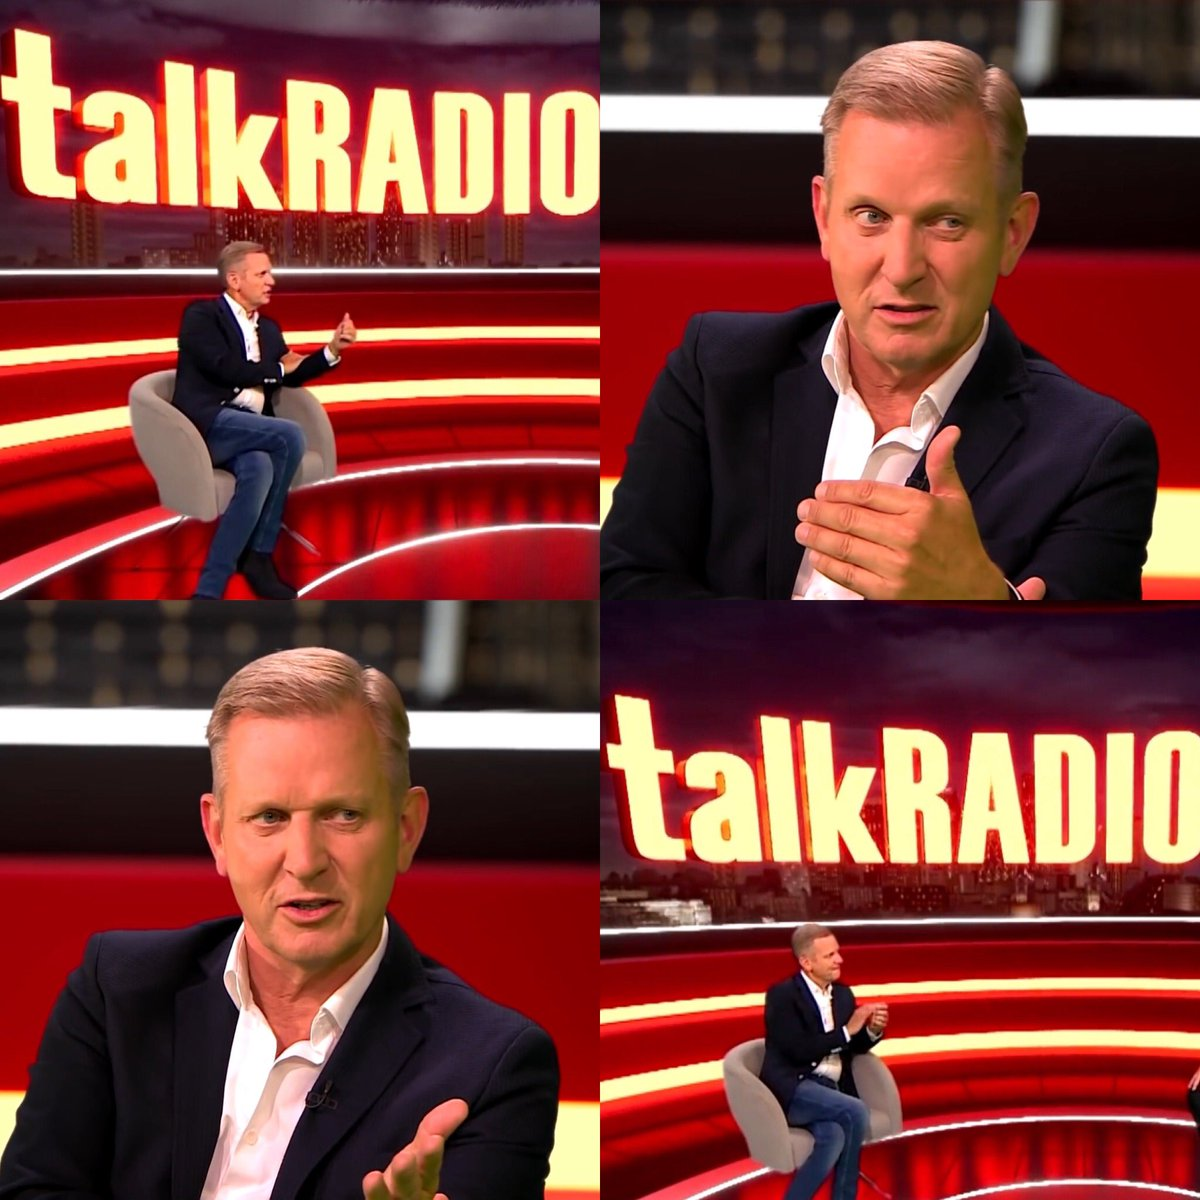 Good luck to Jeremy Kyle on his debut show on @TalkRadioUK_ at 4pm today! 📻 Good to have you back! #jeremykyle #talkradio #drivetime #backforgood #thecangroup #takentmanagement #radio #tv #press #social